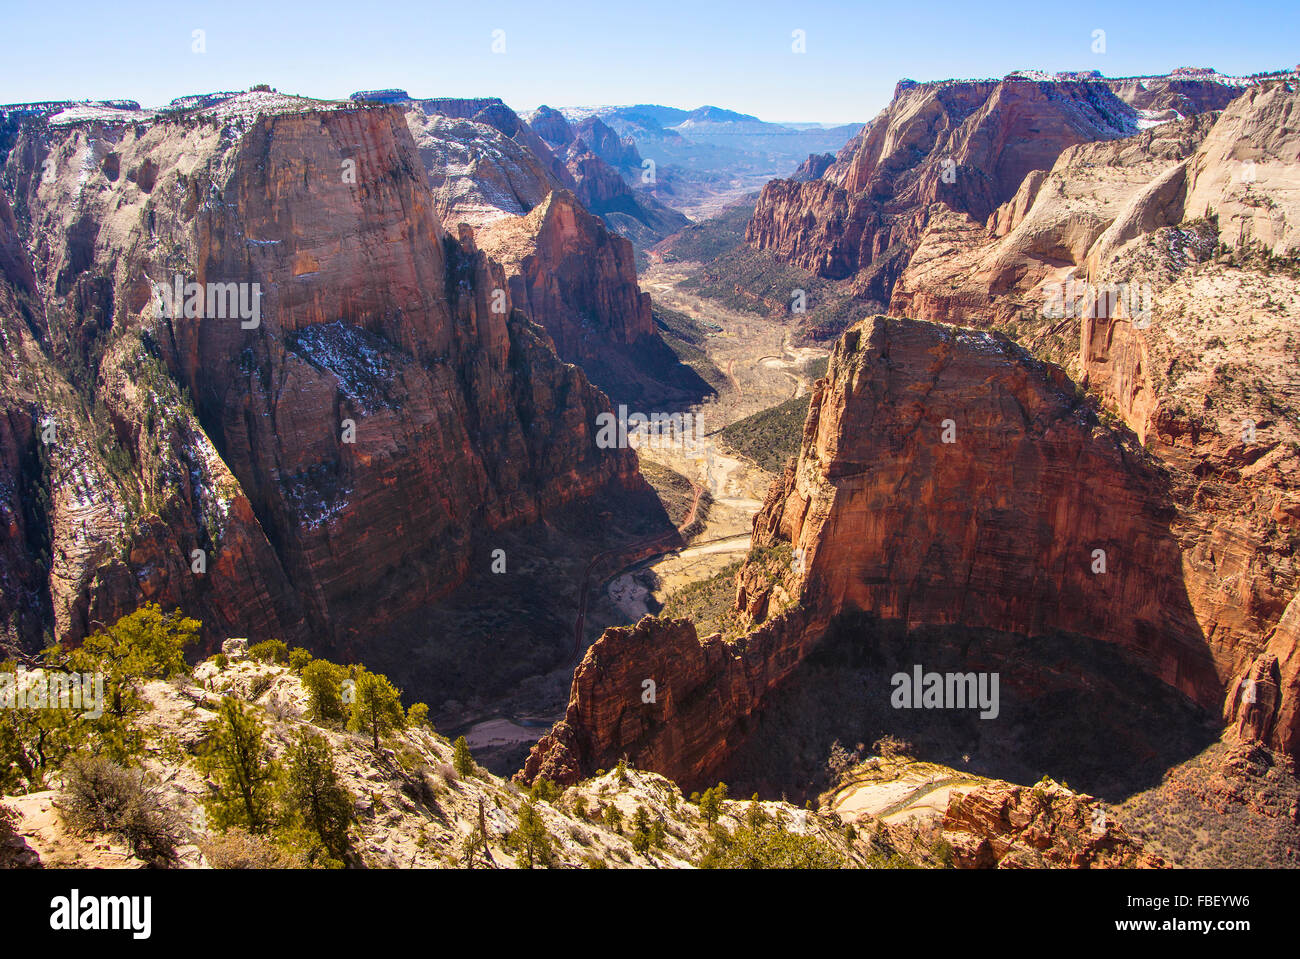 Vue du Canyon, Zion National Park Photo Stock